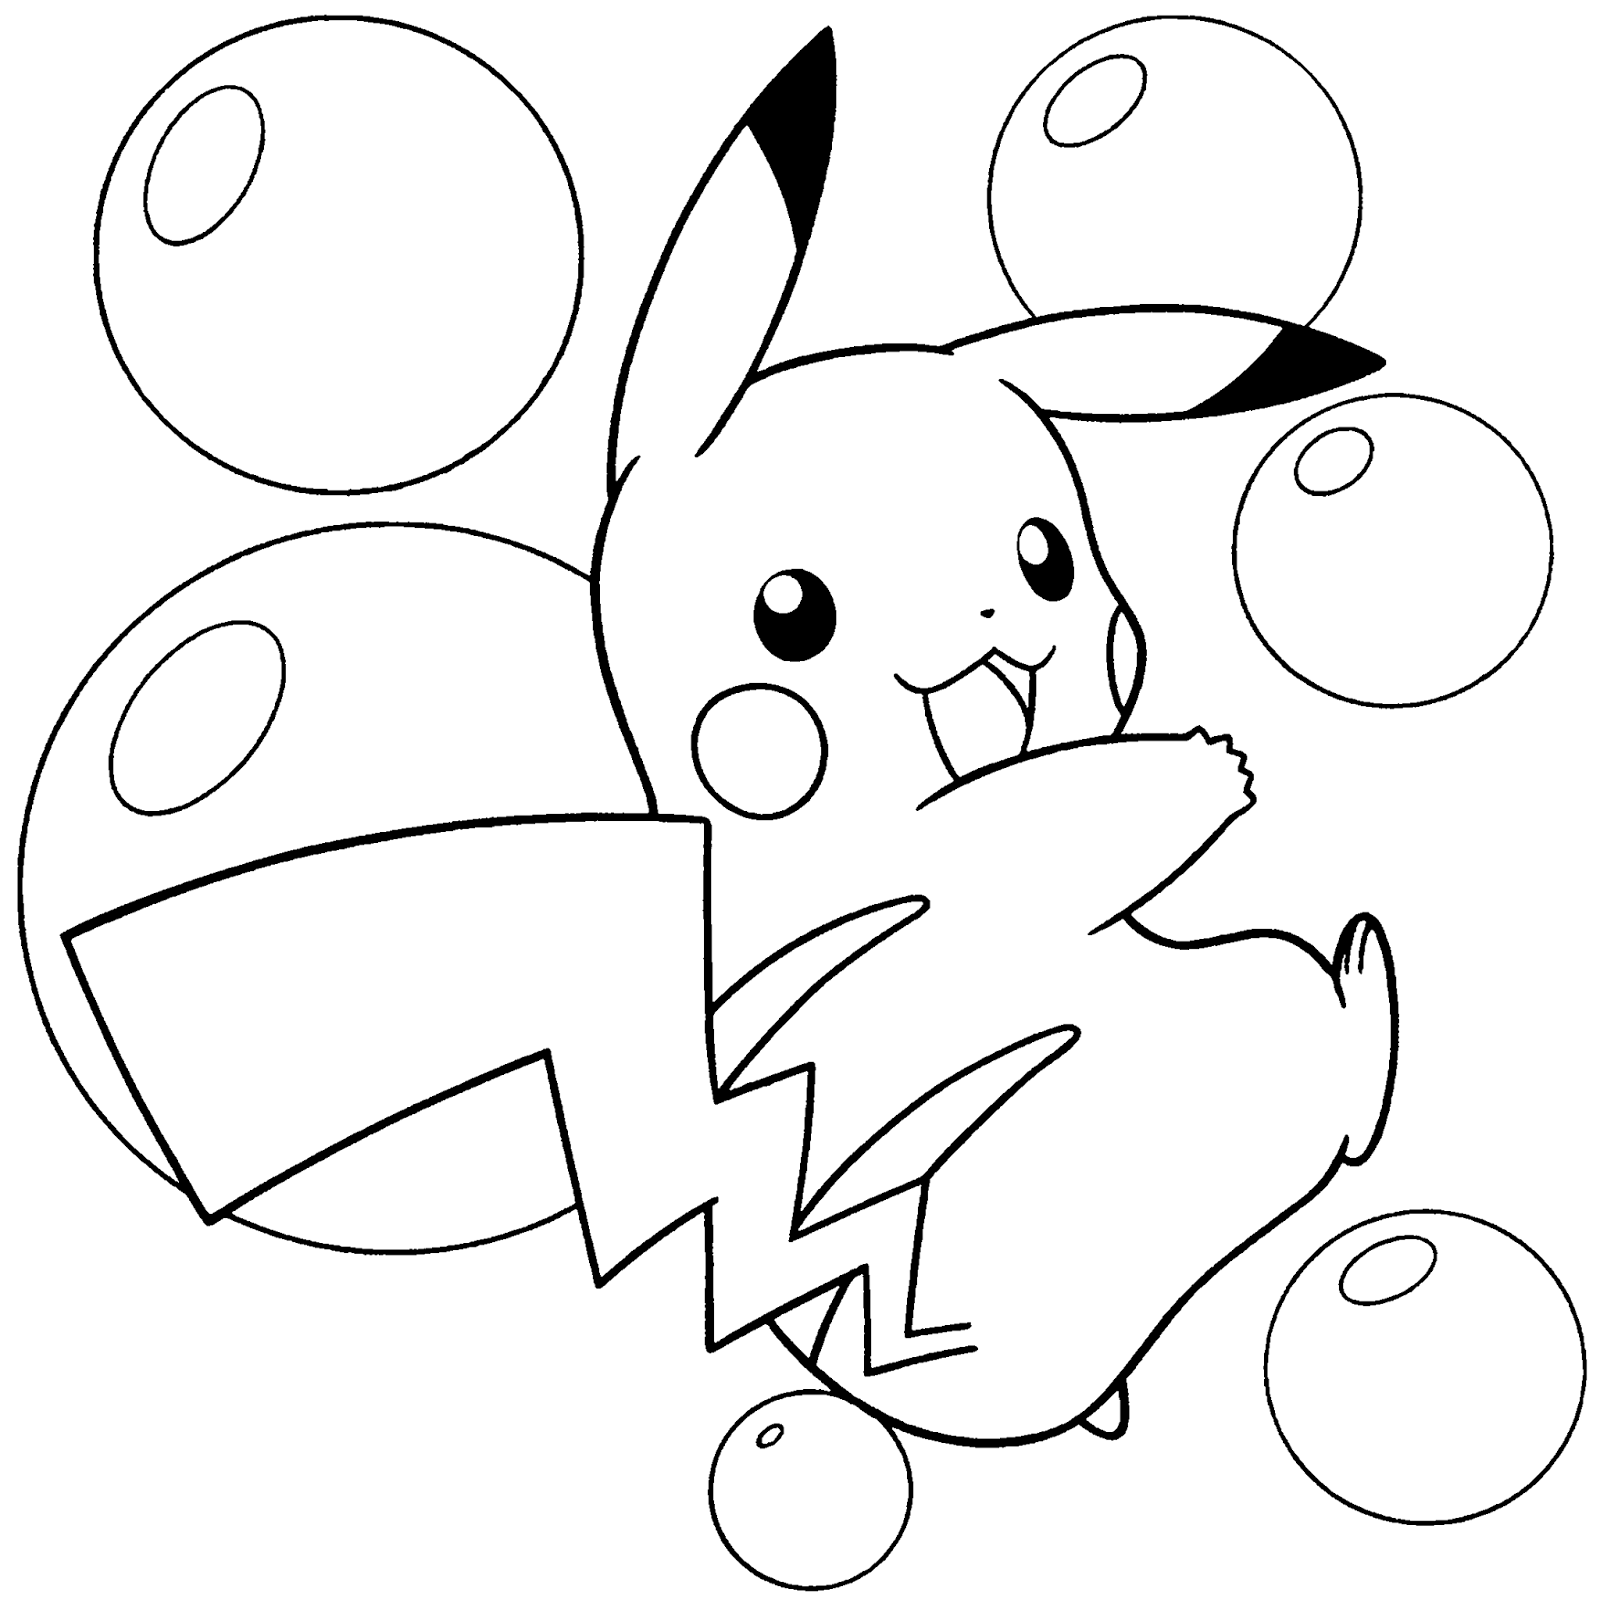 pokemon coloring pages for kids printable pokemon coloring pages join your favorite pokemon on an printable pages coloring pokemon kids for